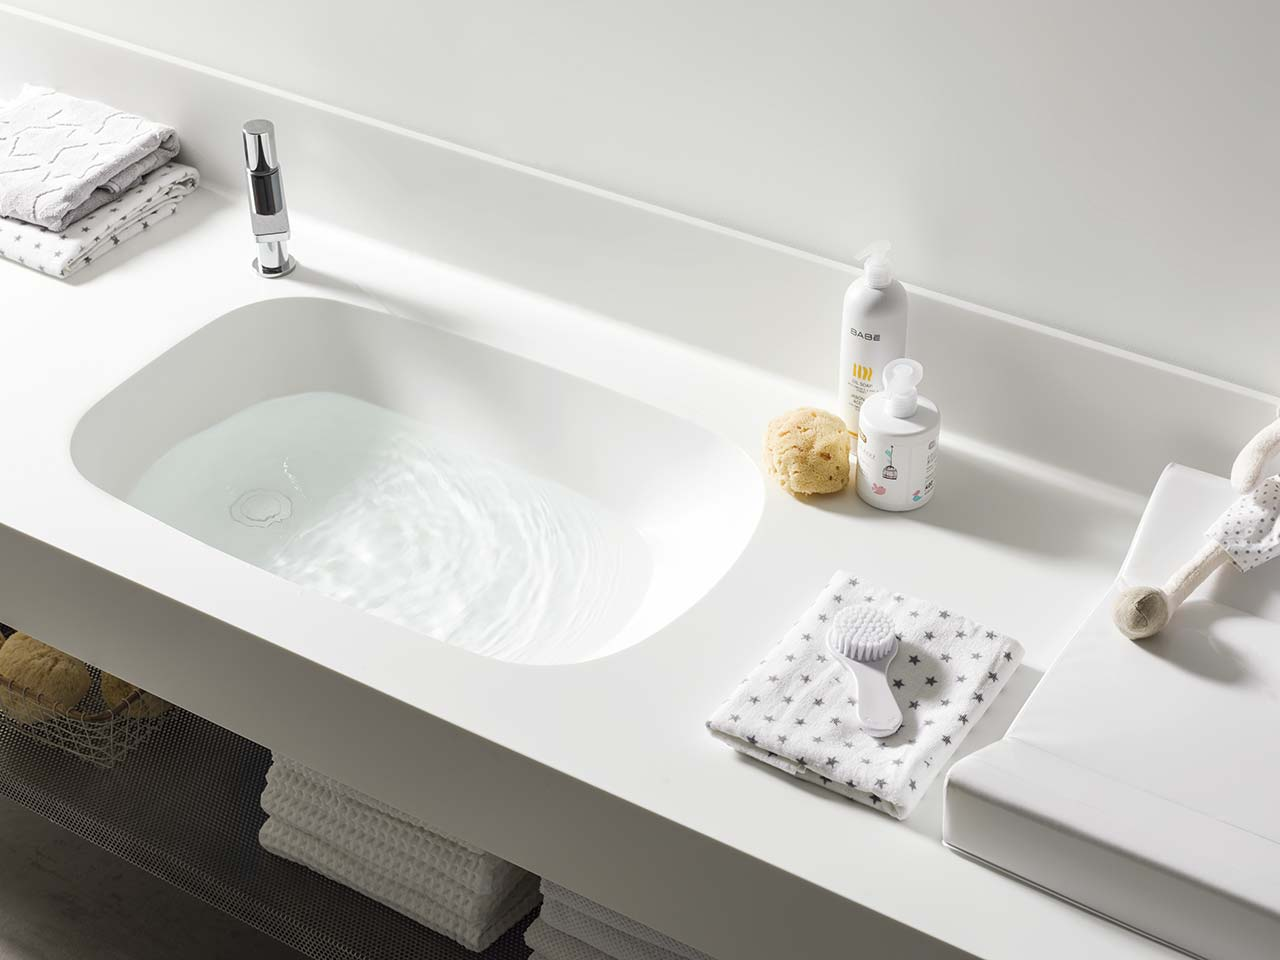 Solid Surface Solid Surface Bathtubs Basic T802 Babybath - 70x42 cm